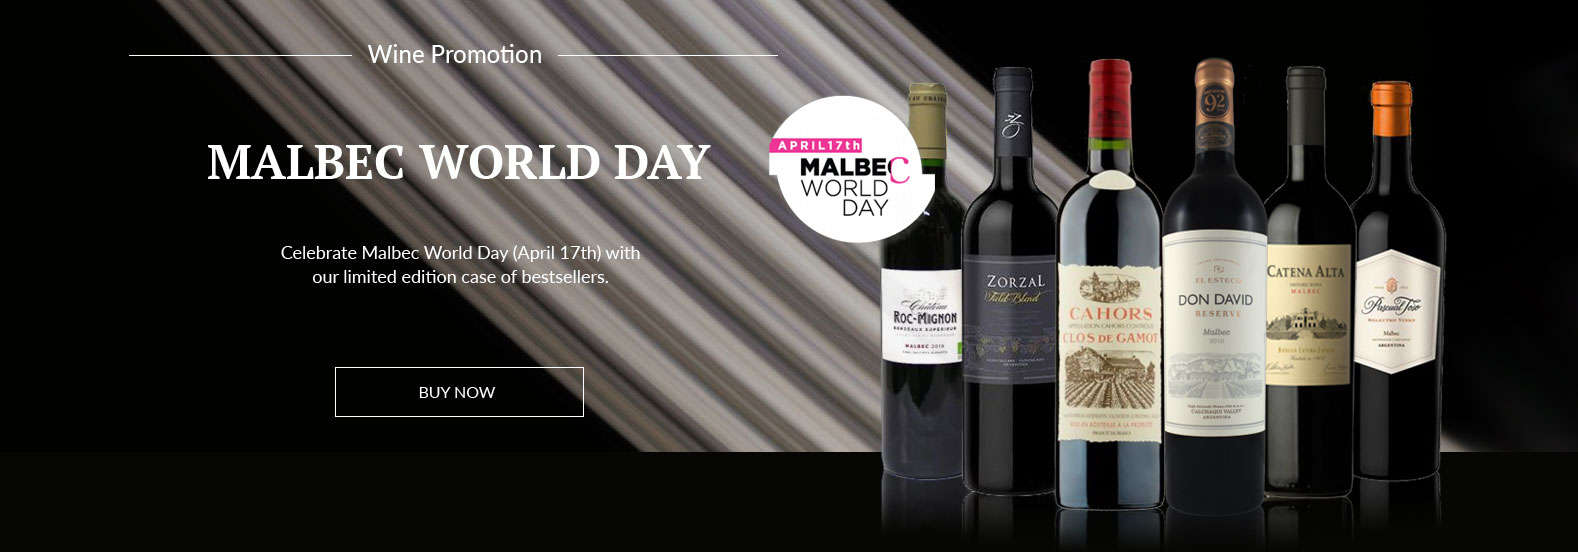 Selection of Malbec wines in front of a graphic white strip on a black background.